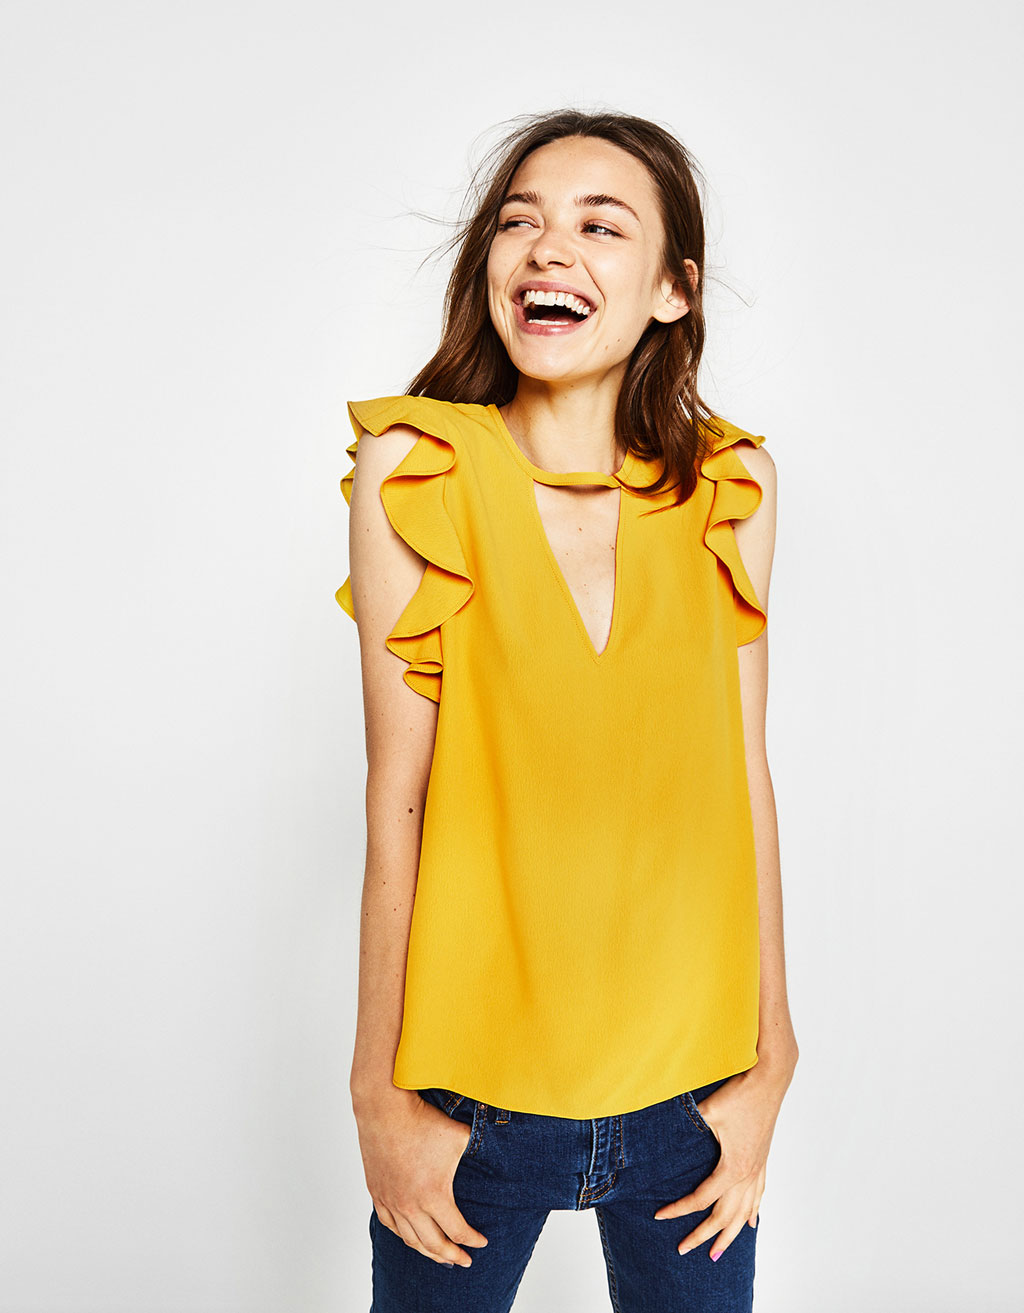 Flowing blouse with ruffles